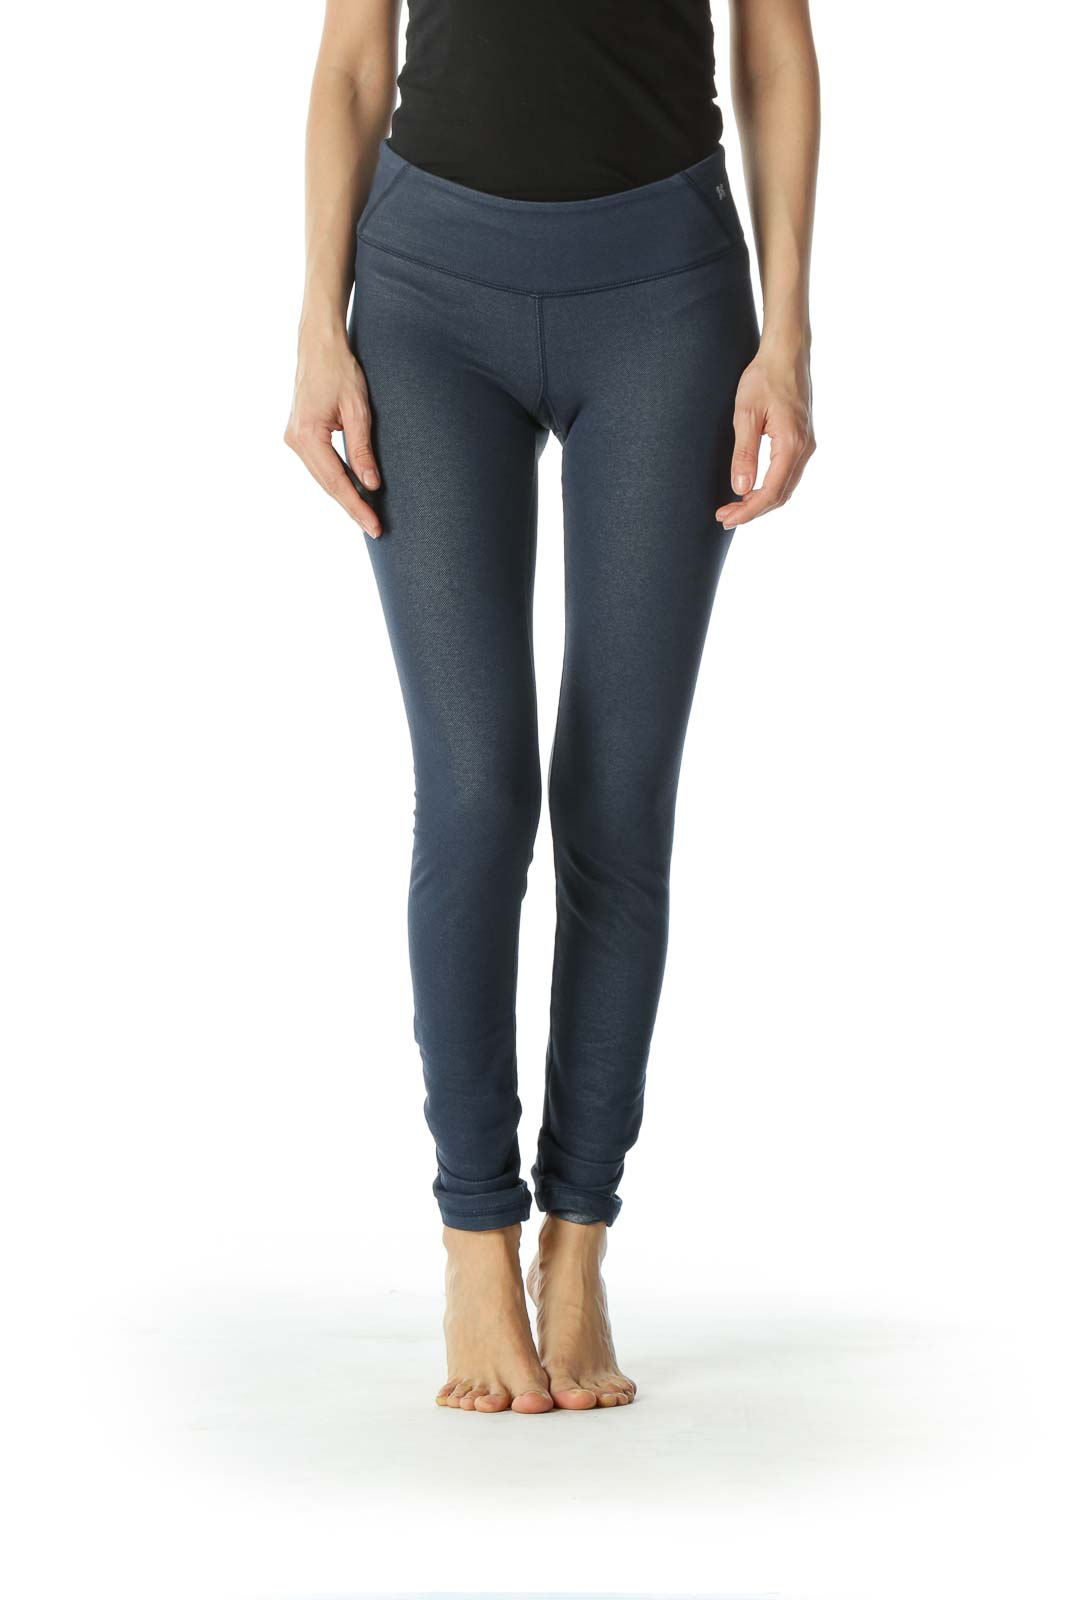 Dark Navy Blue Knit Stretch Leggings